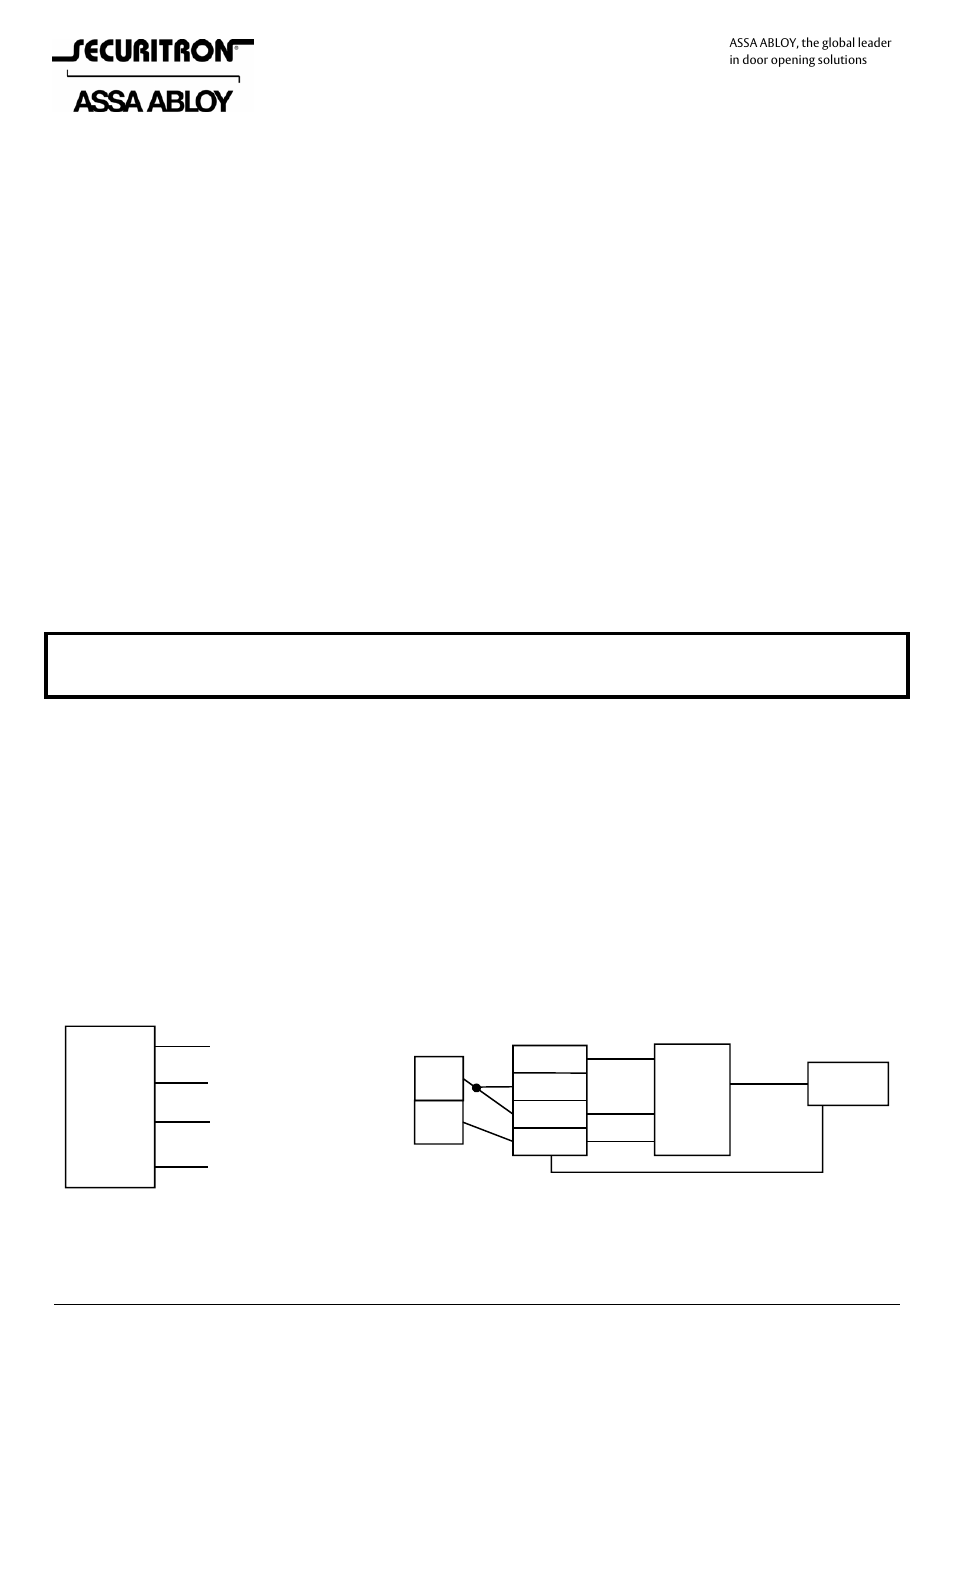 securitron eeb3n page1 securitron eeb3n user manual 2 pages also for eeb2 securitron eeb2 wiring diagram at fashall.co